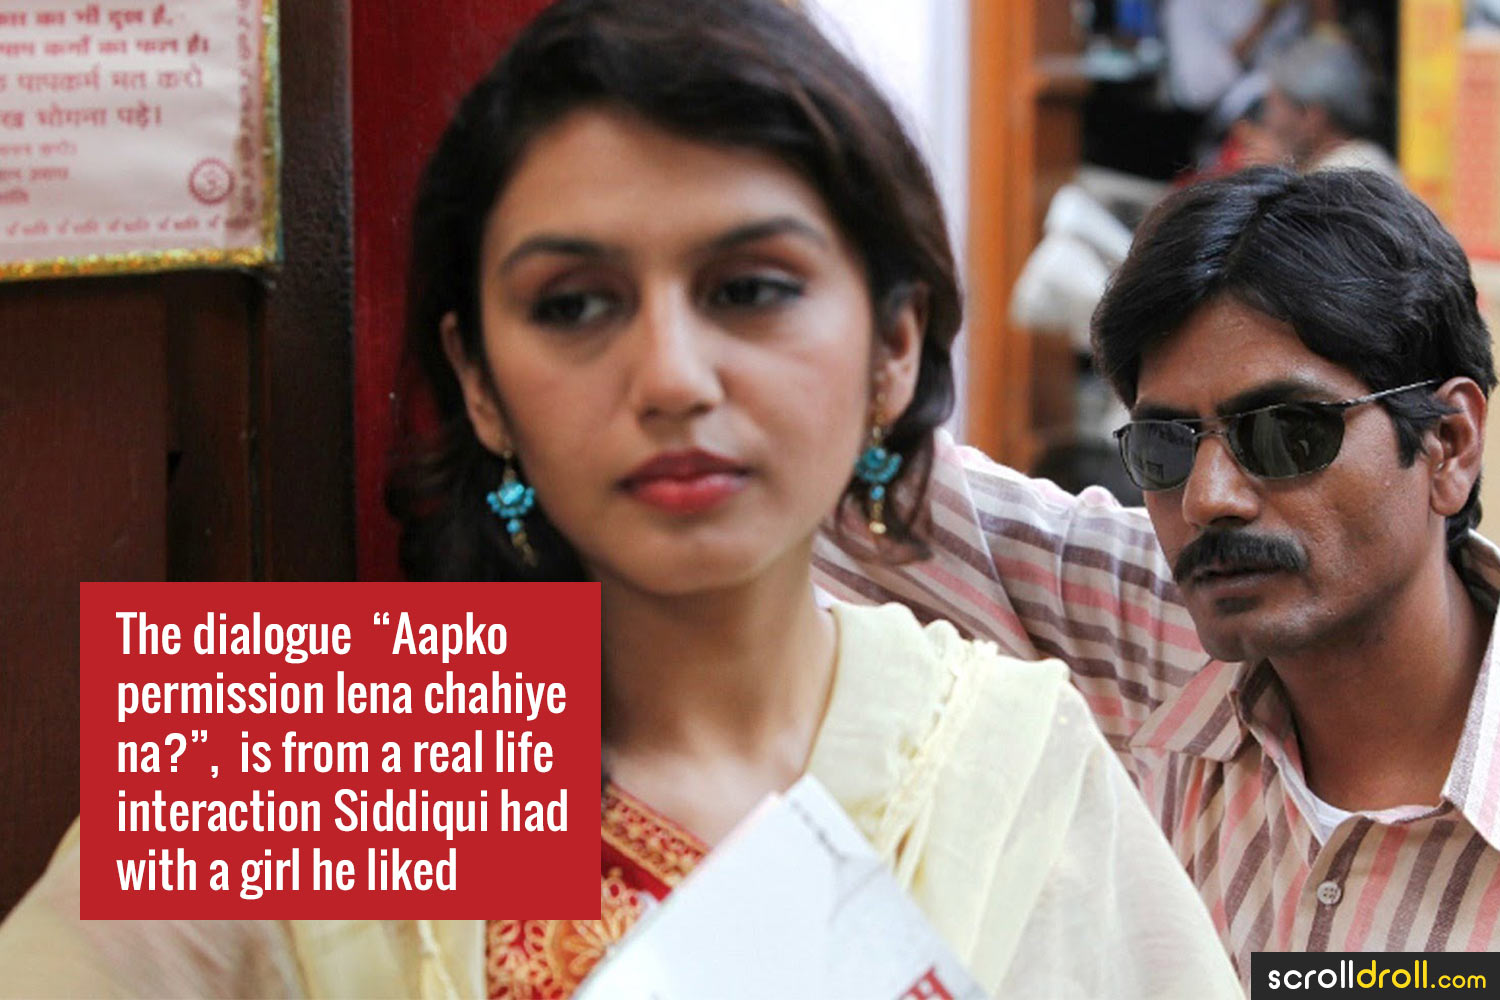 "Facts about Nawazuddin Siddique-The dialouge ""aapko permission lena chahiy e na?""is from a real life interaction Siddiqui had with a girl he liked"